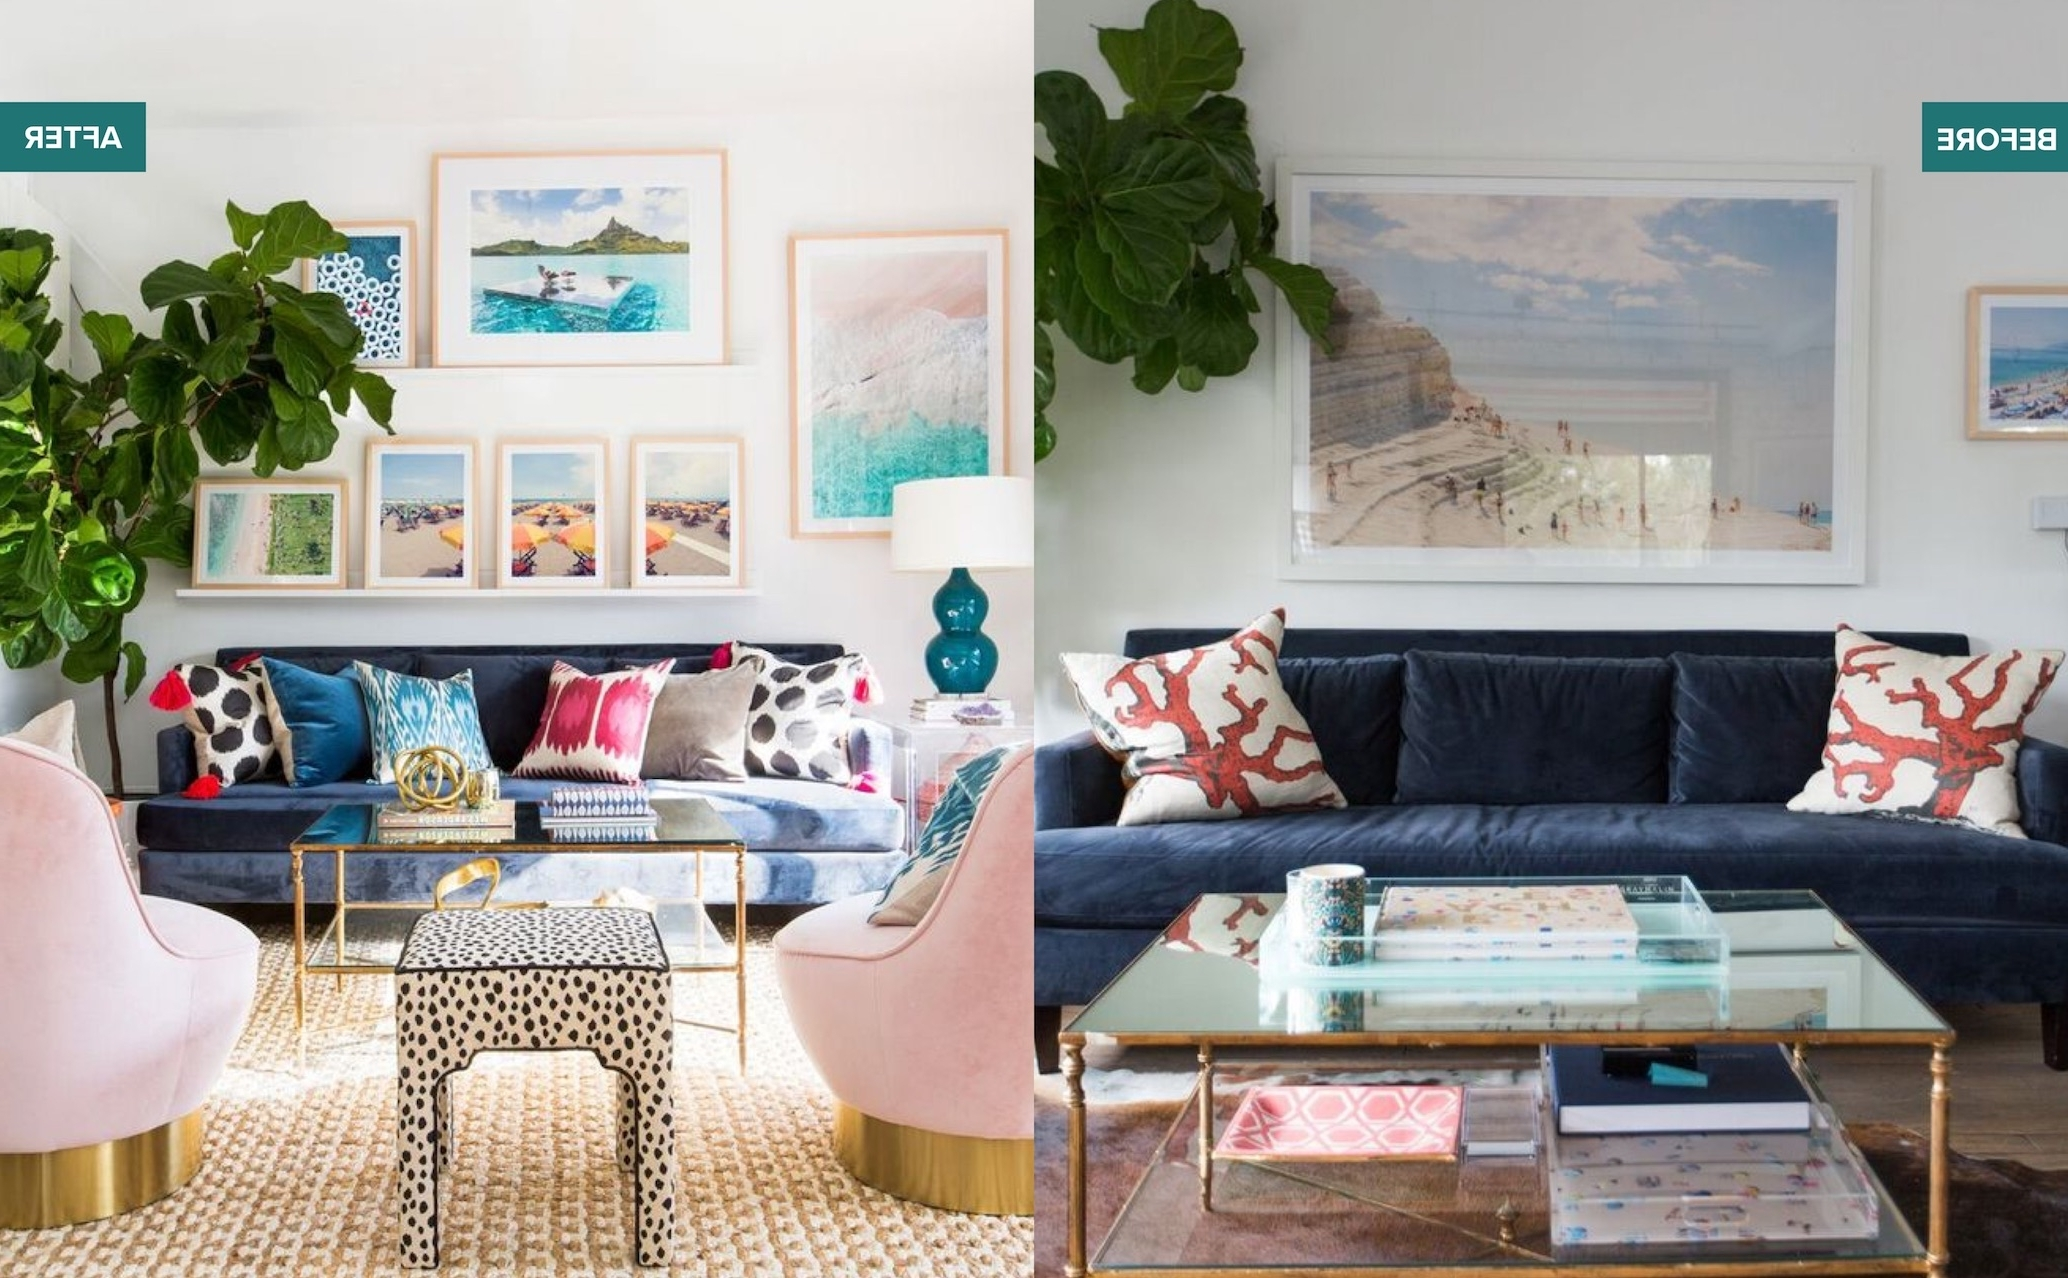 8 Common Interior Home Decoration Mistakes 40+ Tacky Living Room Decor Mistakes Inspirations